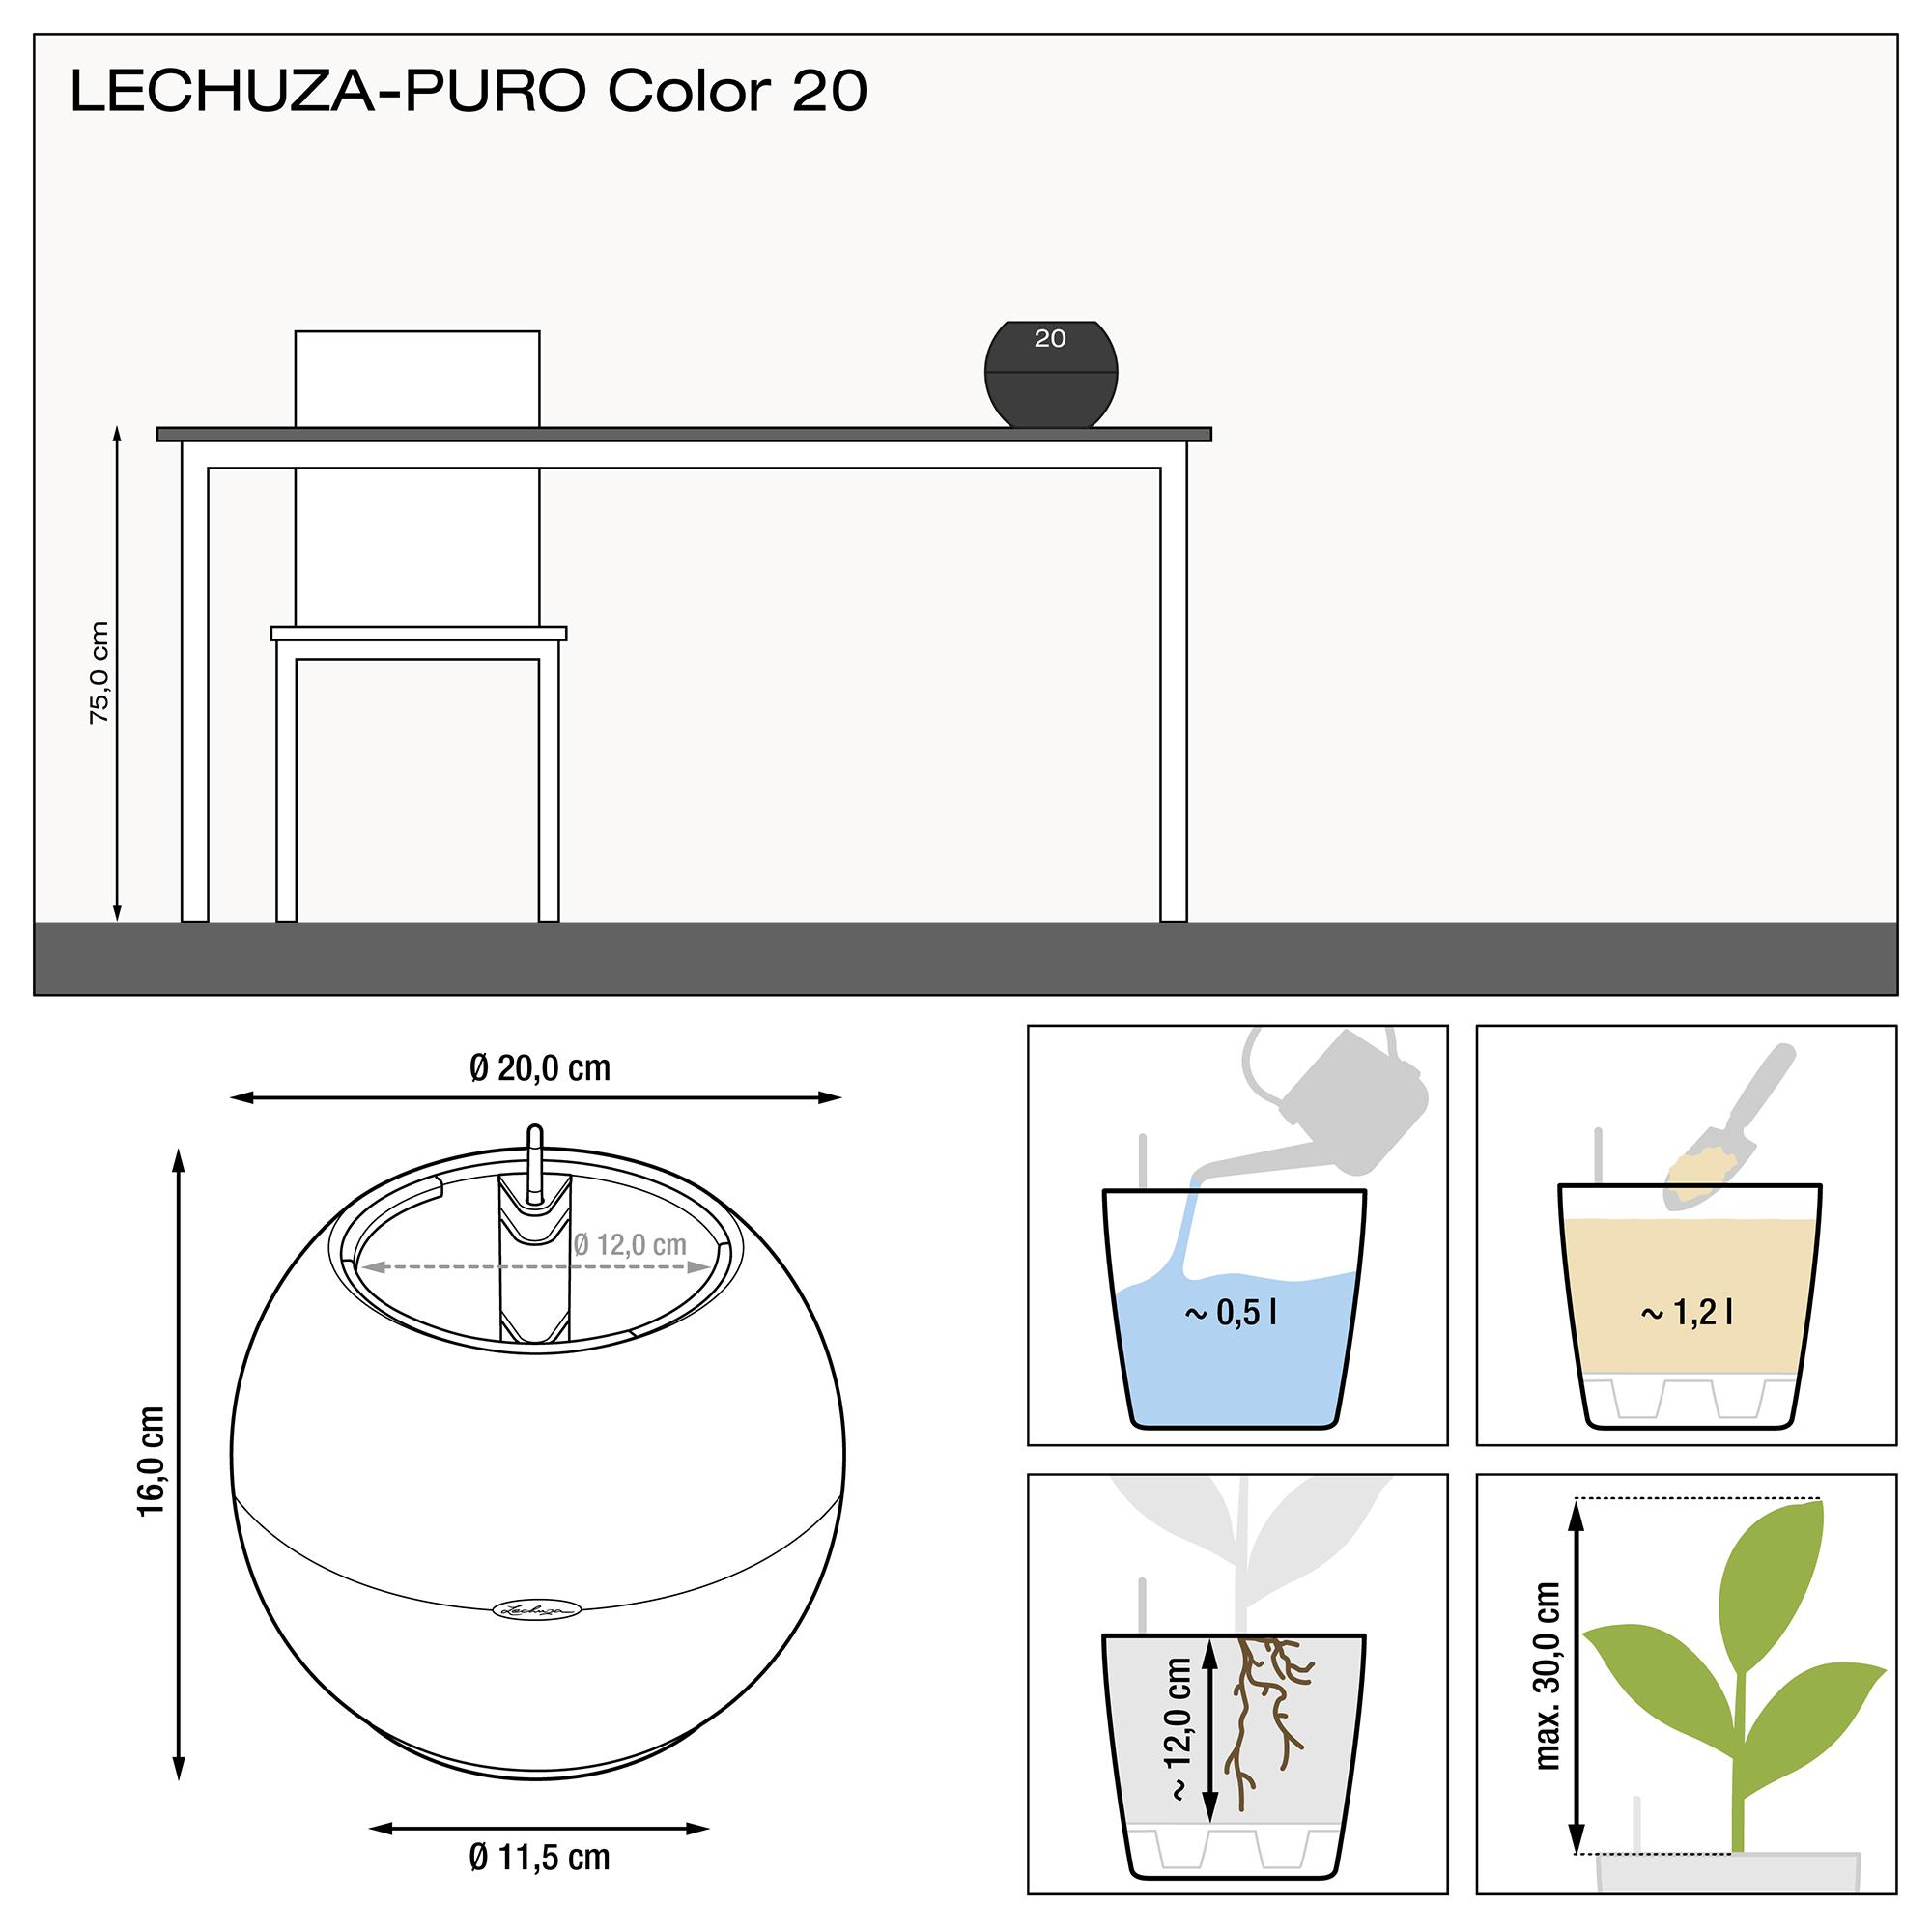 LECHUZA-PURO Color 20 зеленый лайм - изображение 3